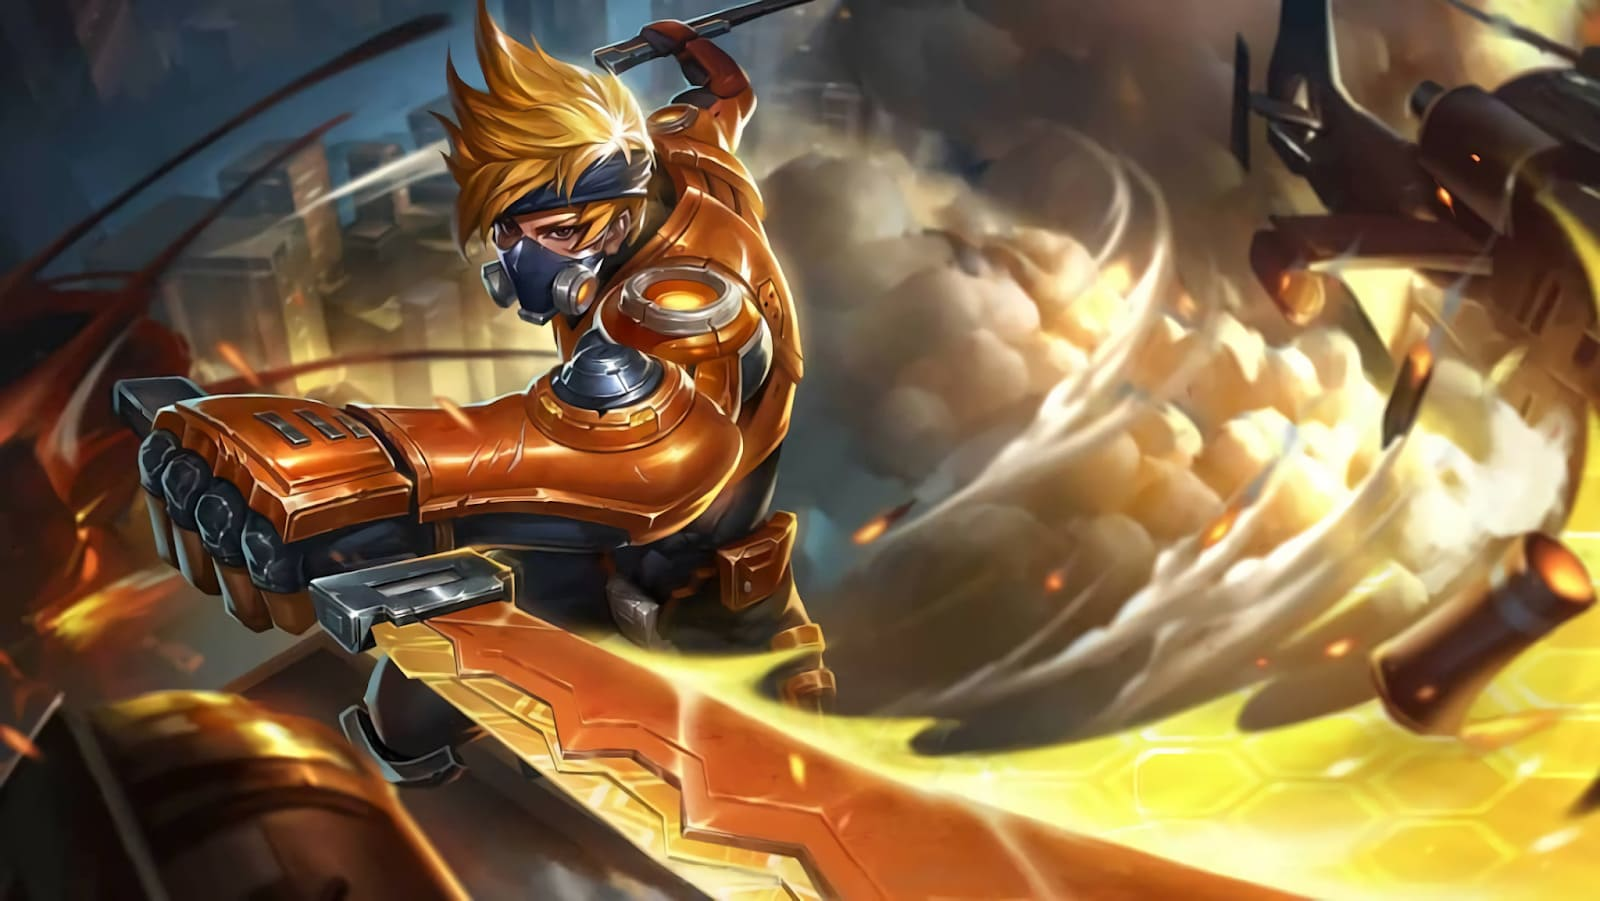 Wallpaper Hayabusa Spacetime Shadow Skin Mobile Legends HD for PC